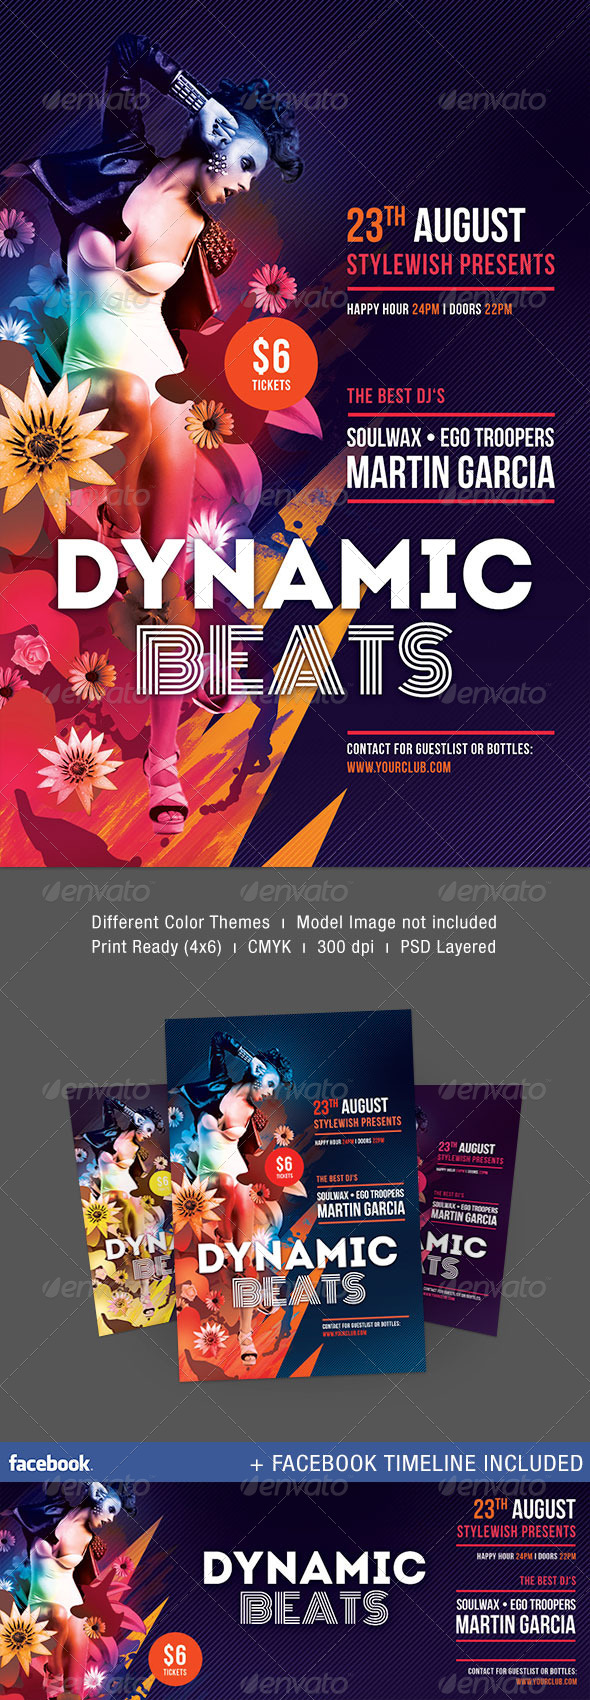 Dynamic Beats Flyer + Facebook Timeline - Clubs & Parties Events